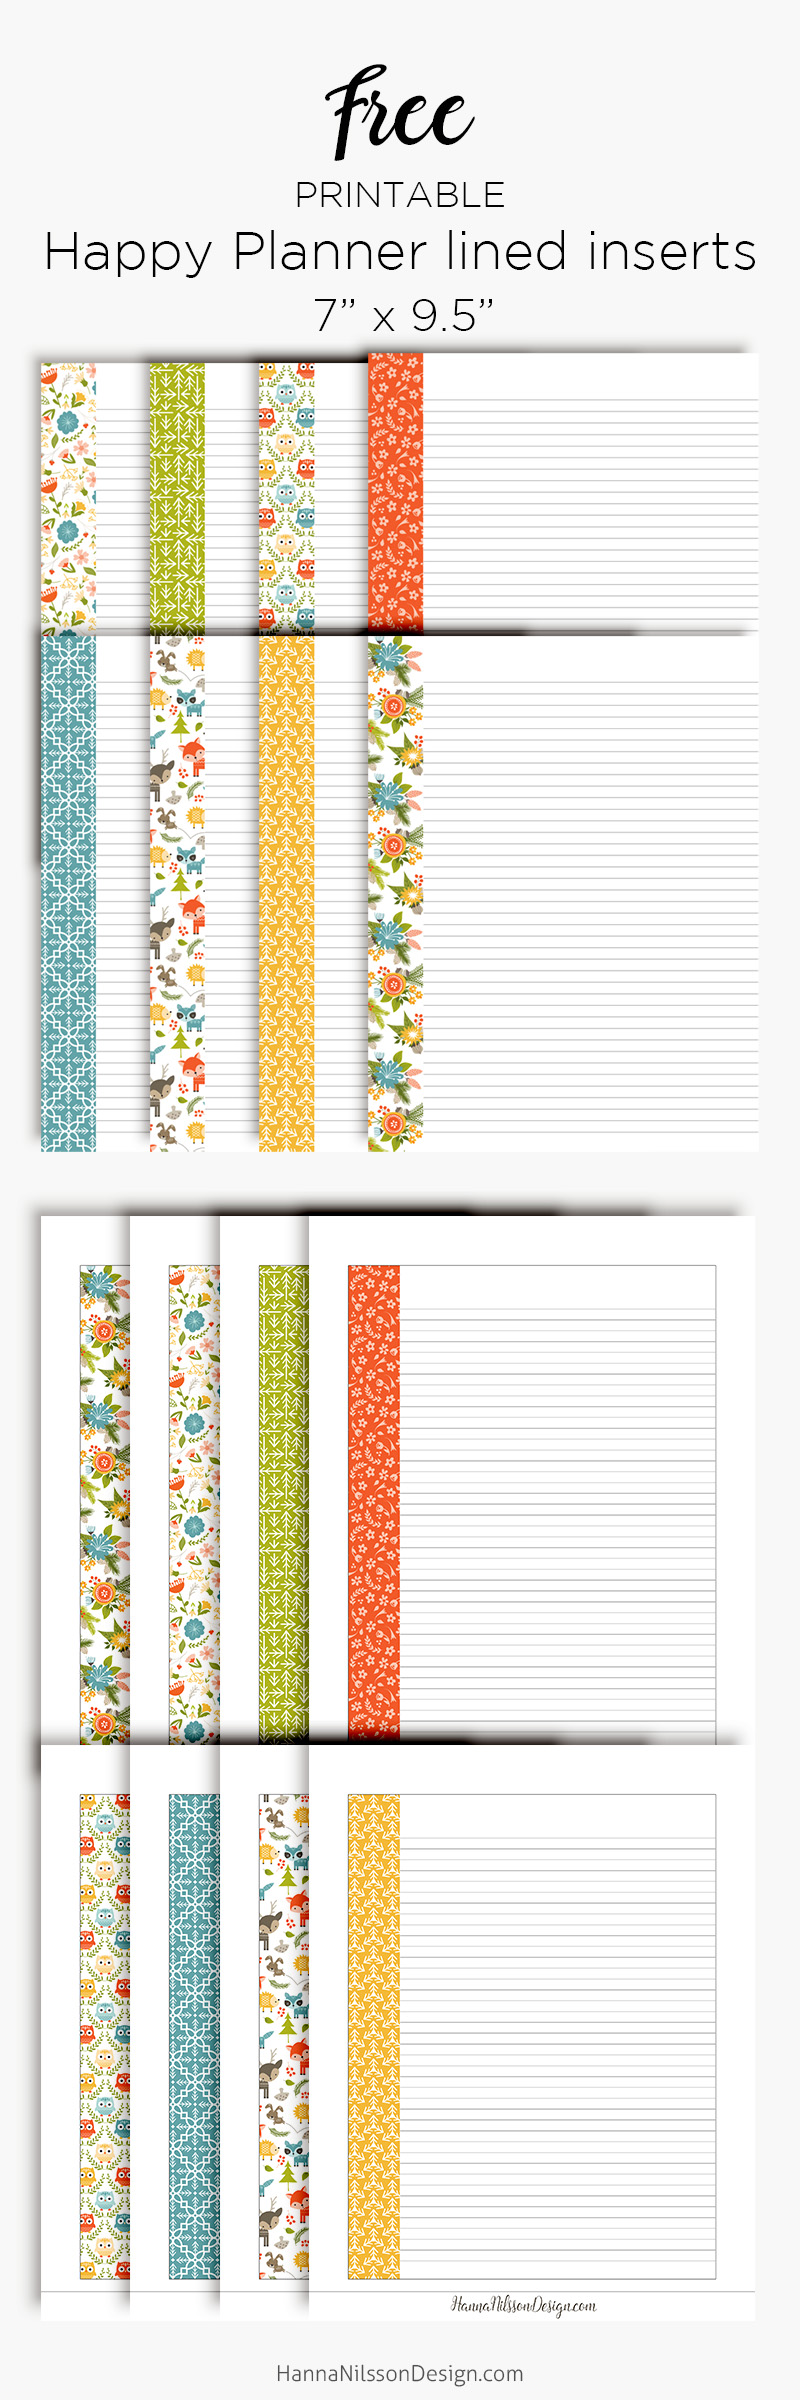 image about A5 Planner Printables titled Covered planner inserts Joyful Planner + A5 Specific dimension